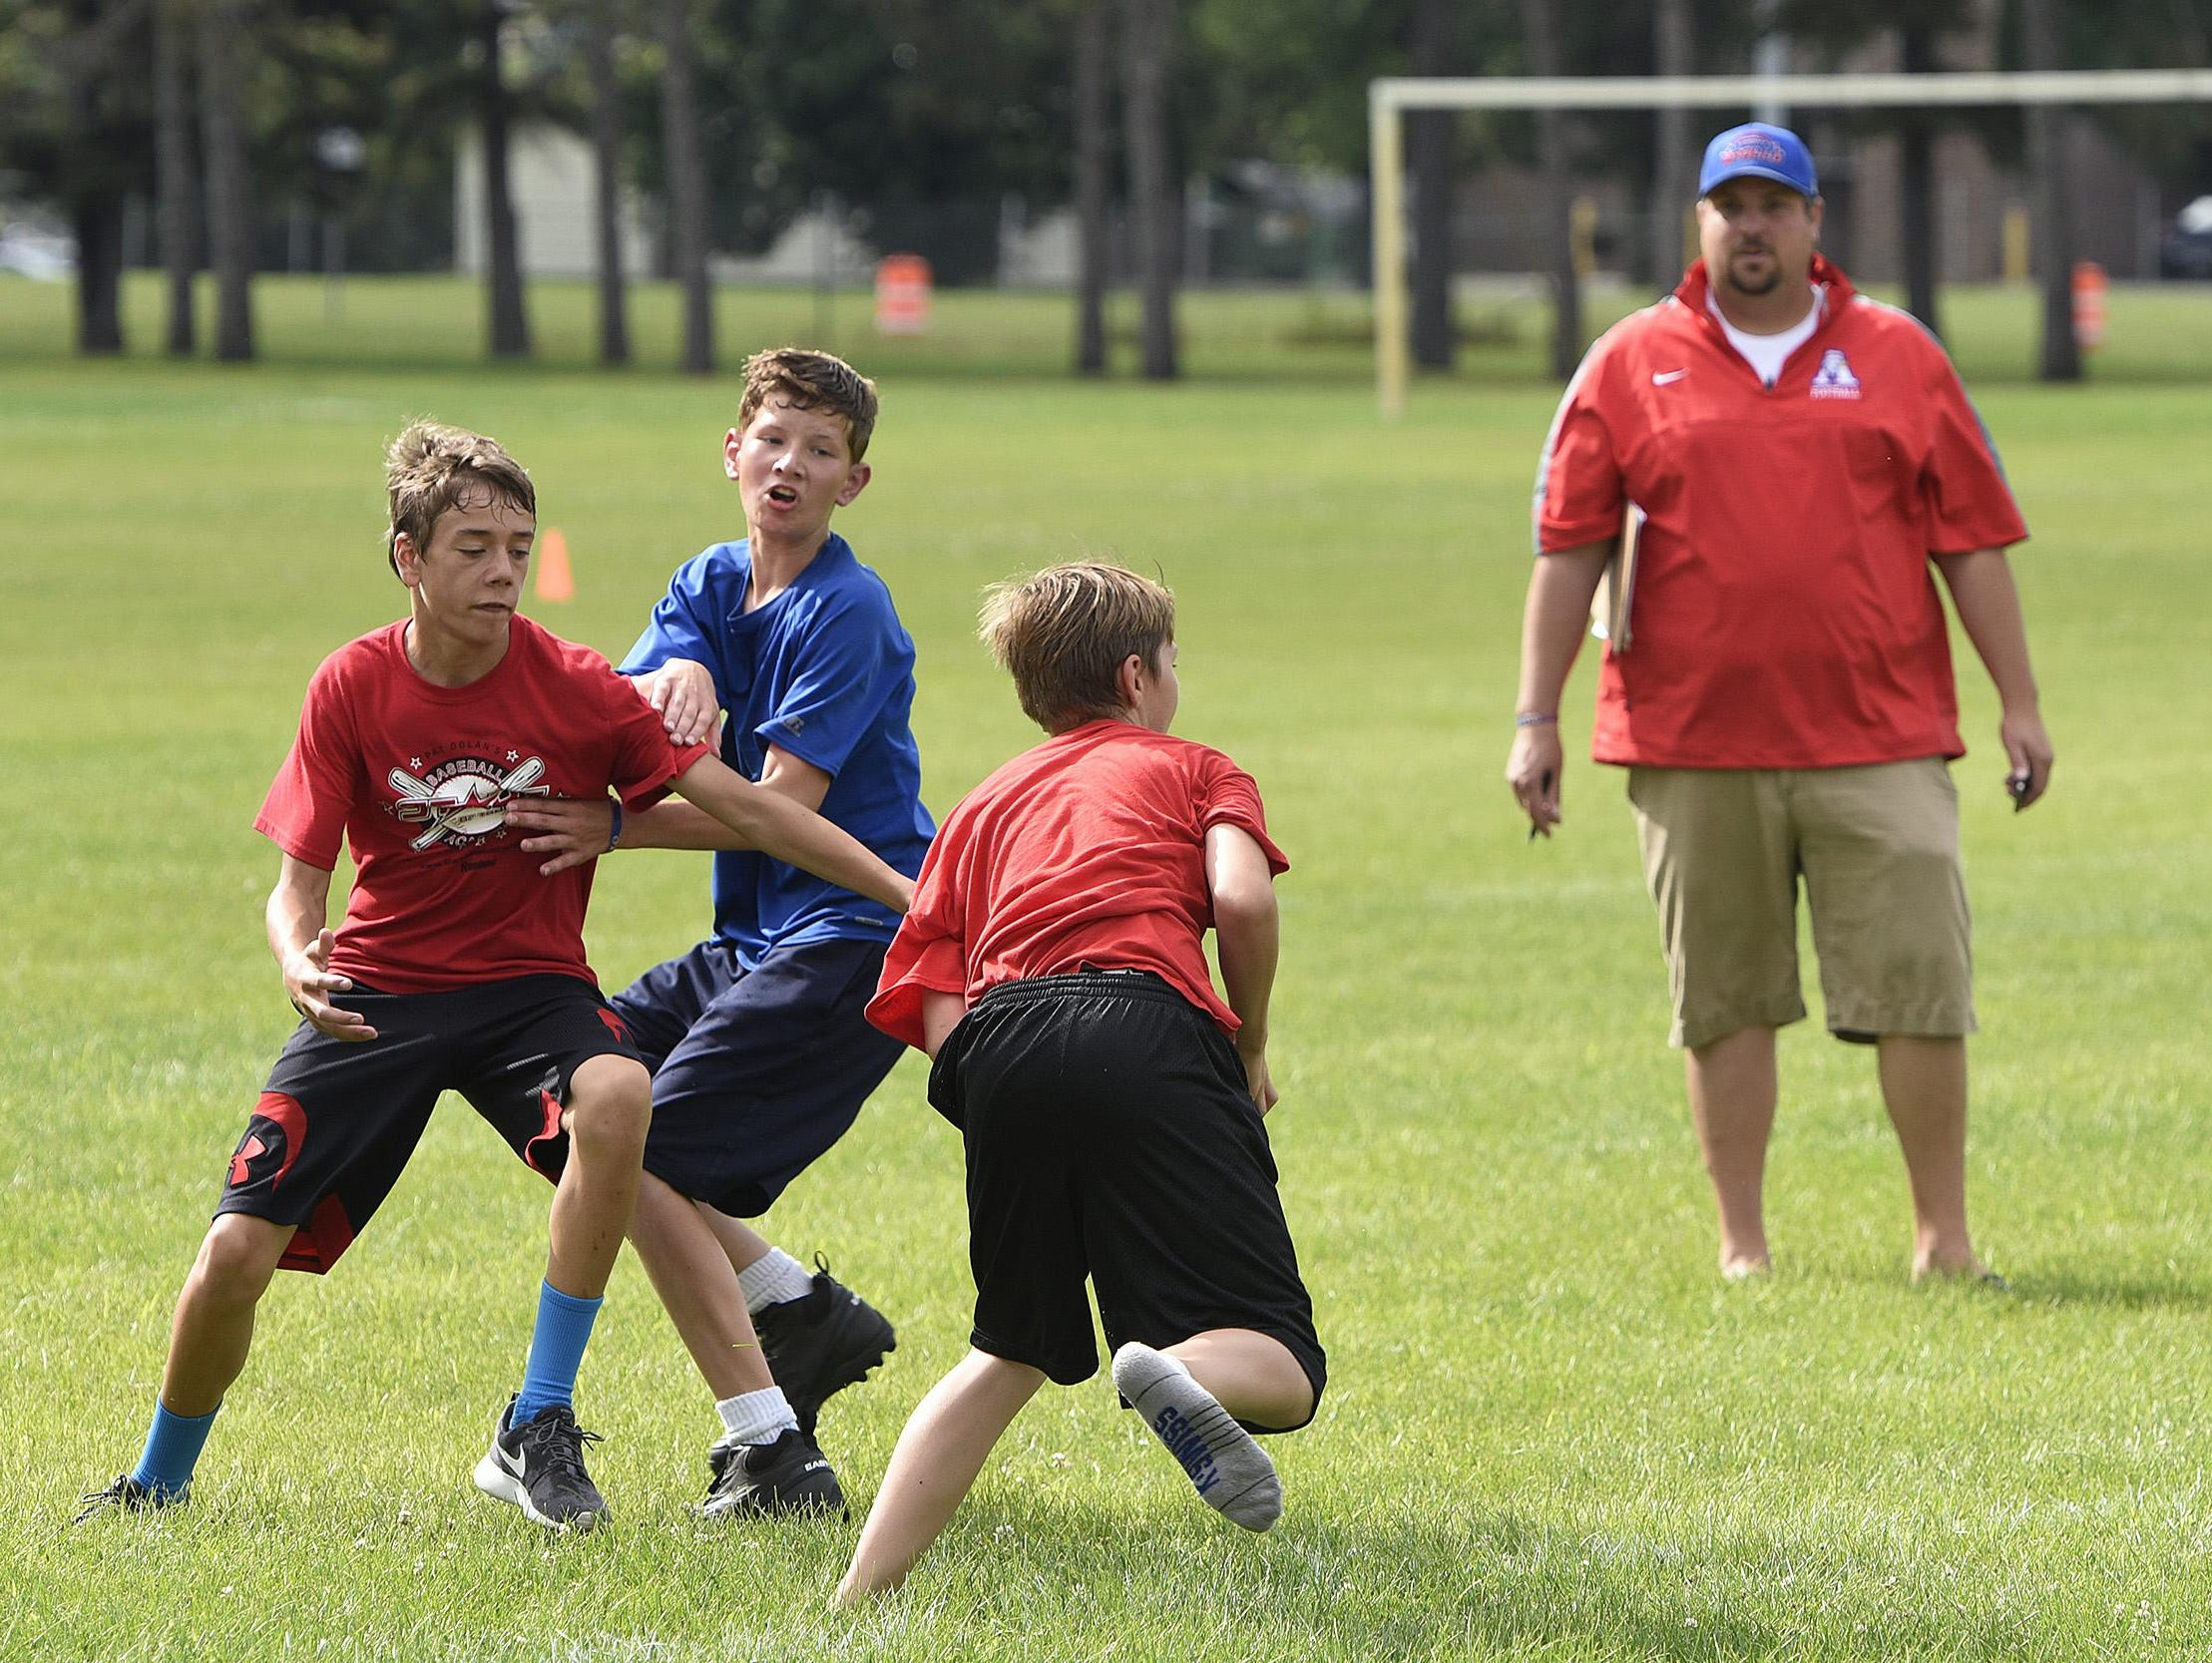 Apollo High School head football coach Justin Skaalerud watches as a touch football play unfolds Friday during the last youth camp session at the high school in St. Cloud.